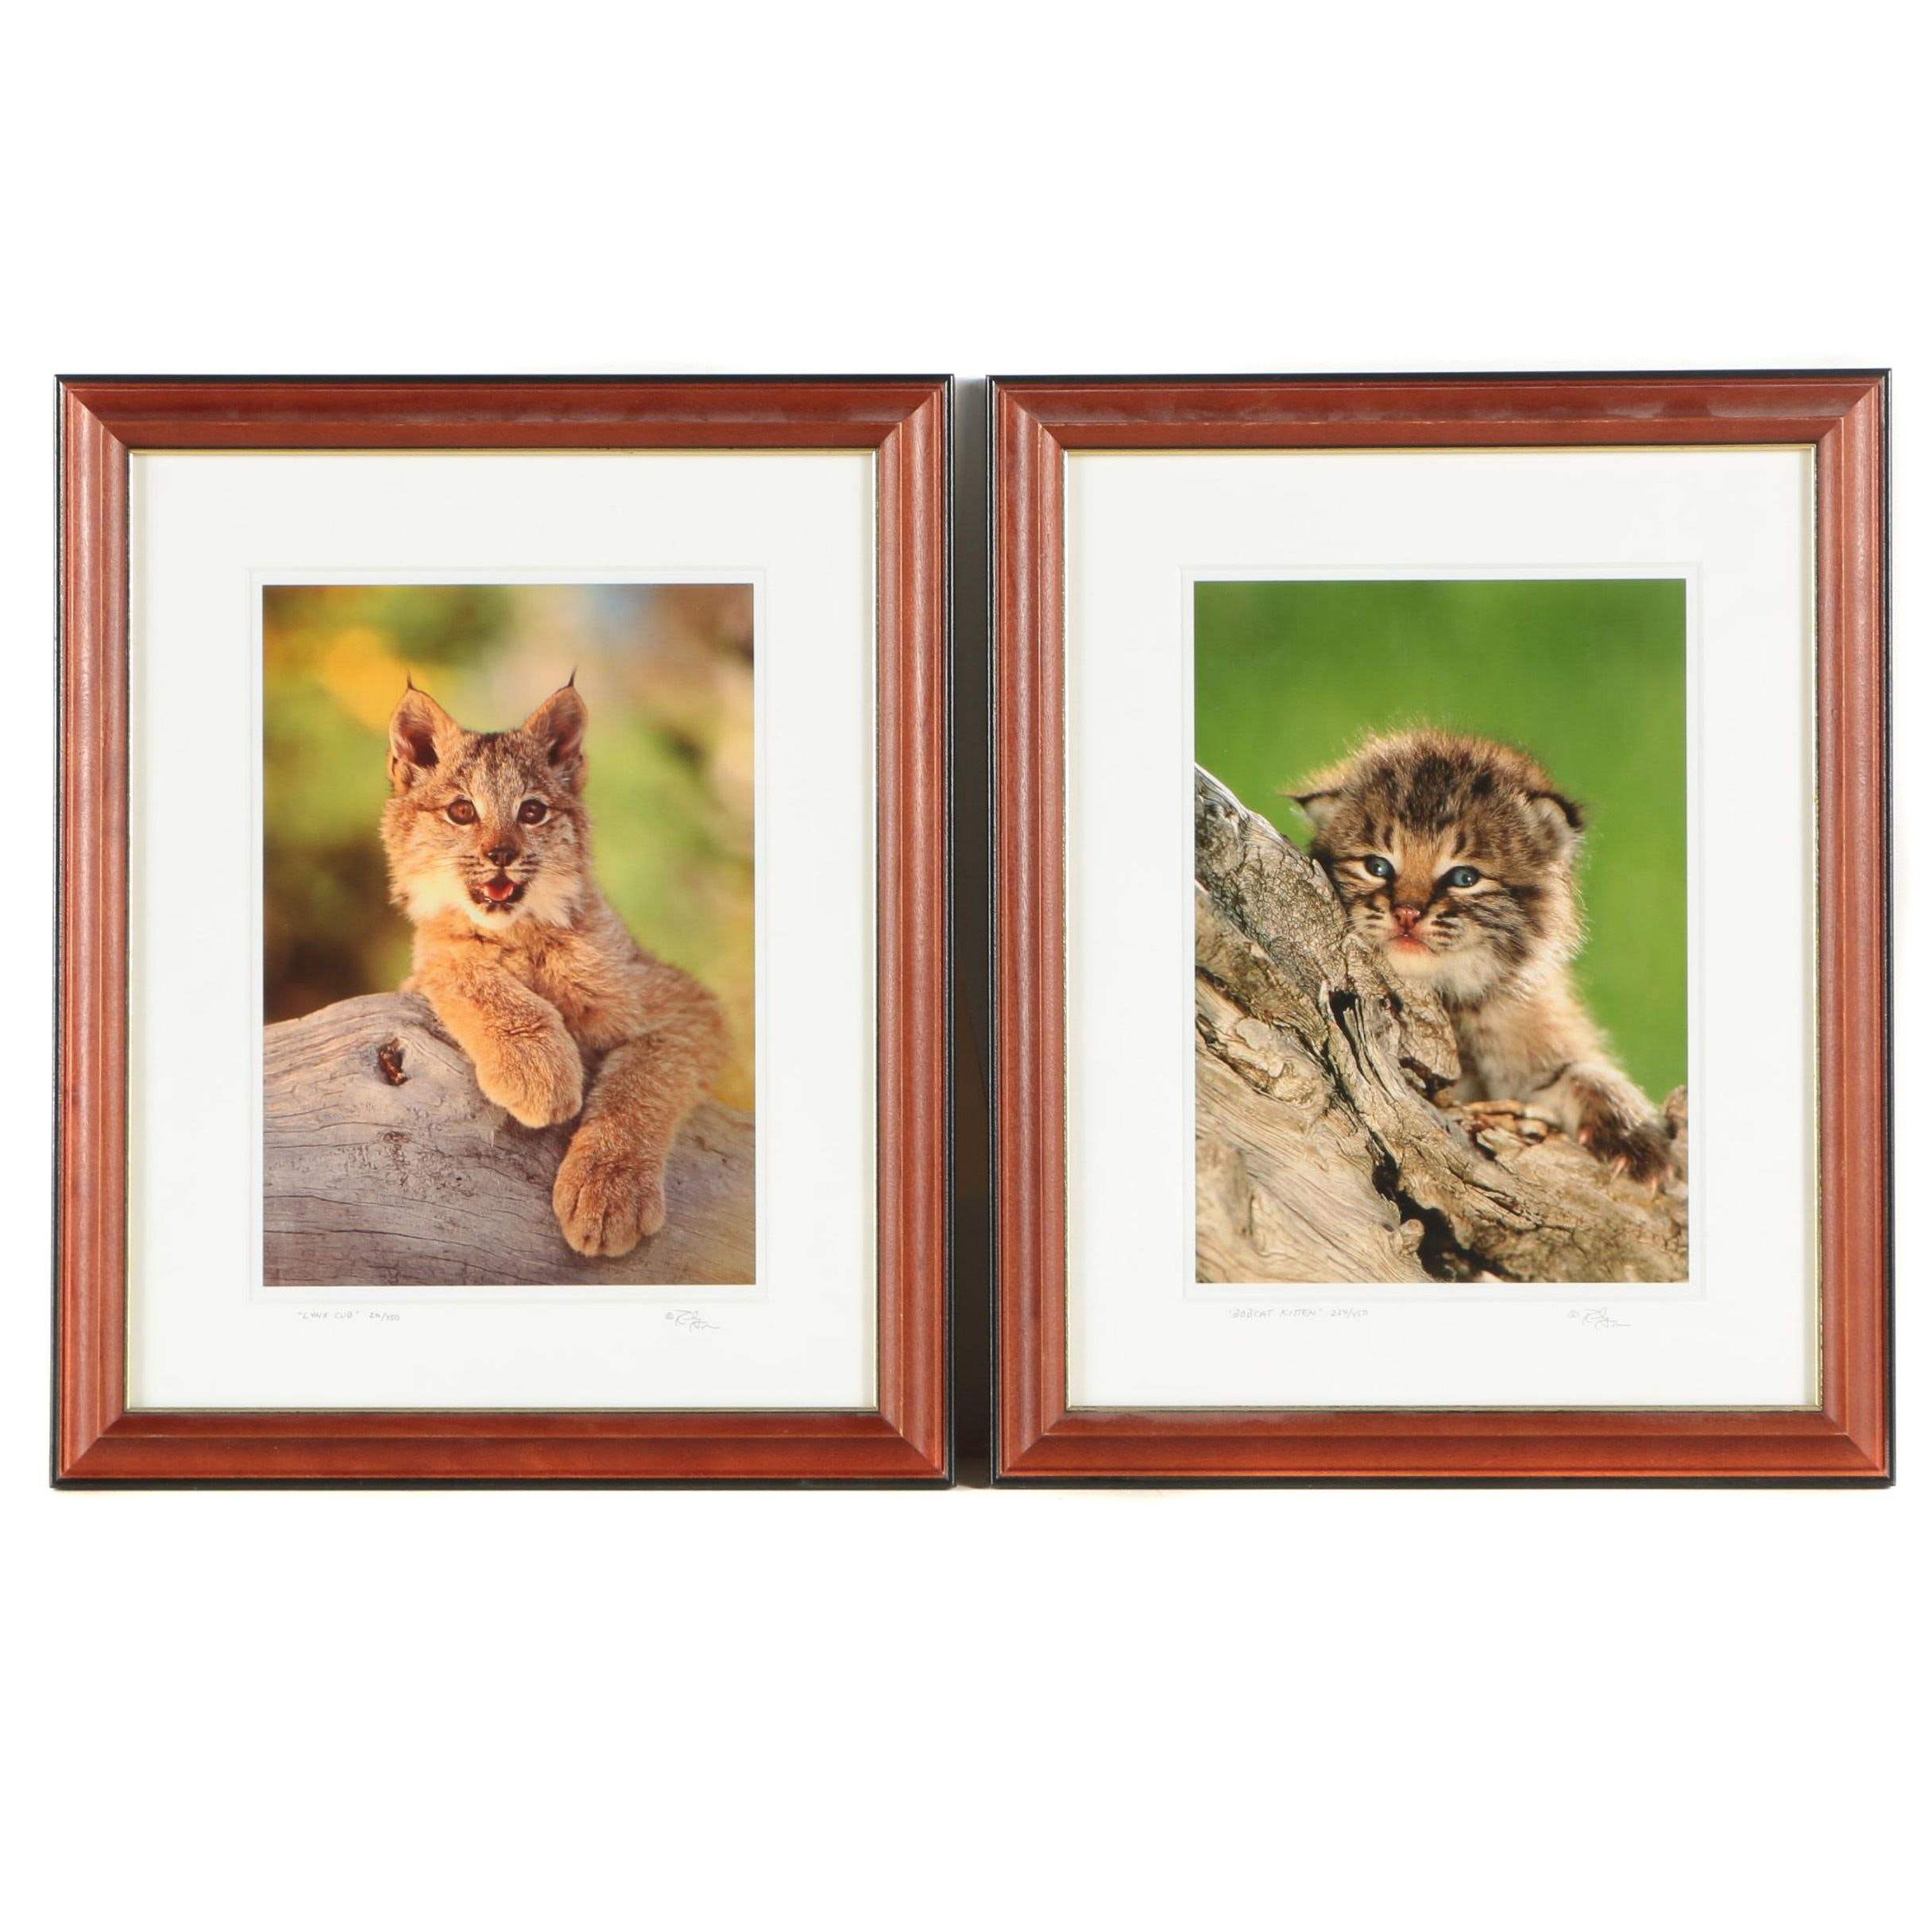 Randy Napier Limited Edition Digital Prints of Cats